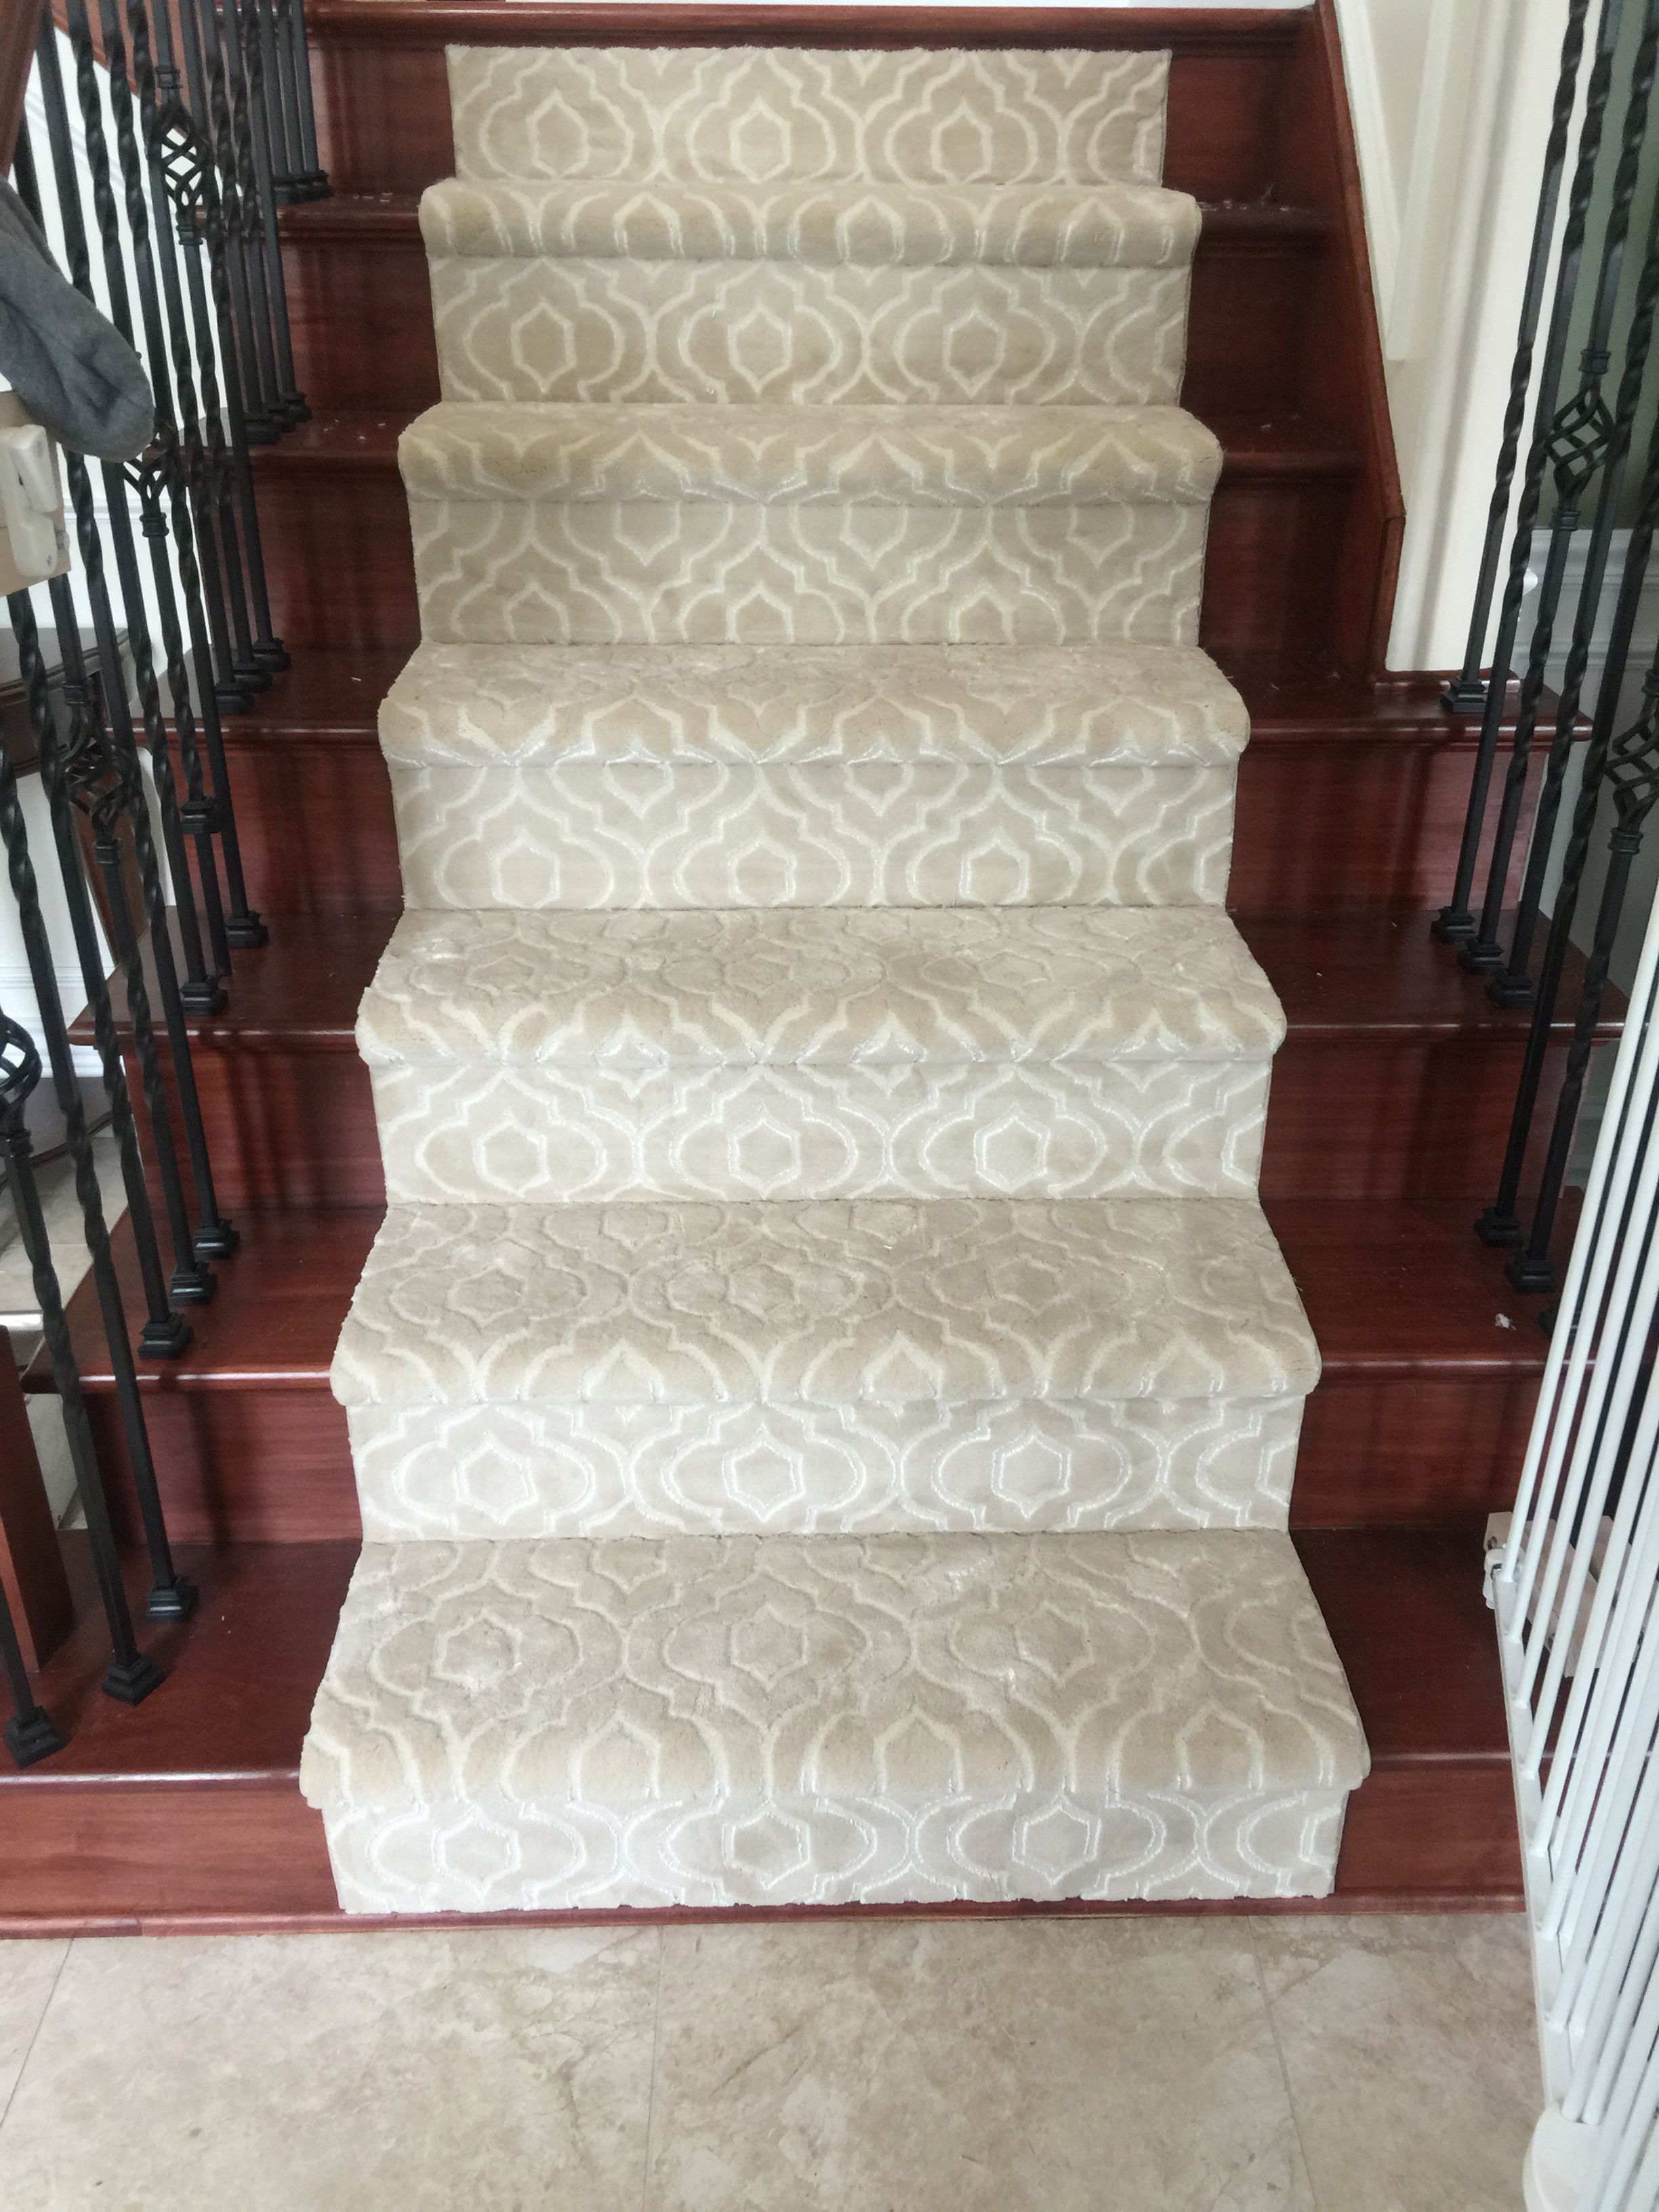 Best Awesome Looking Stair Runner Using Kane Carpet Style Bel 400 x 300